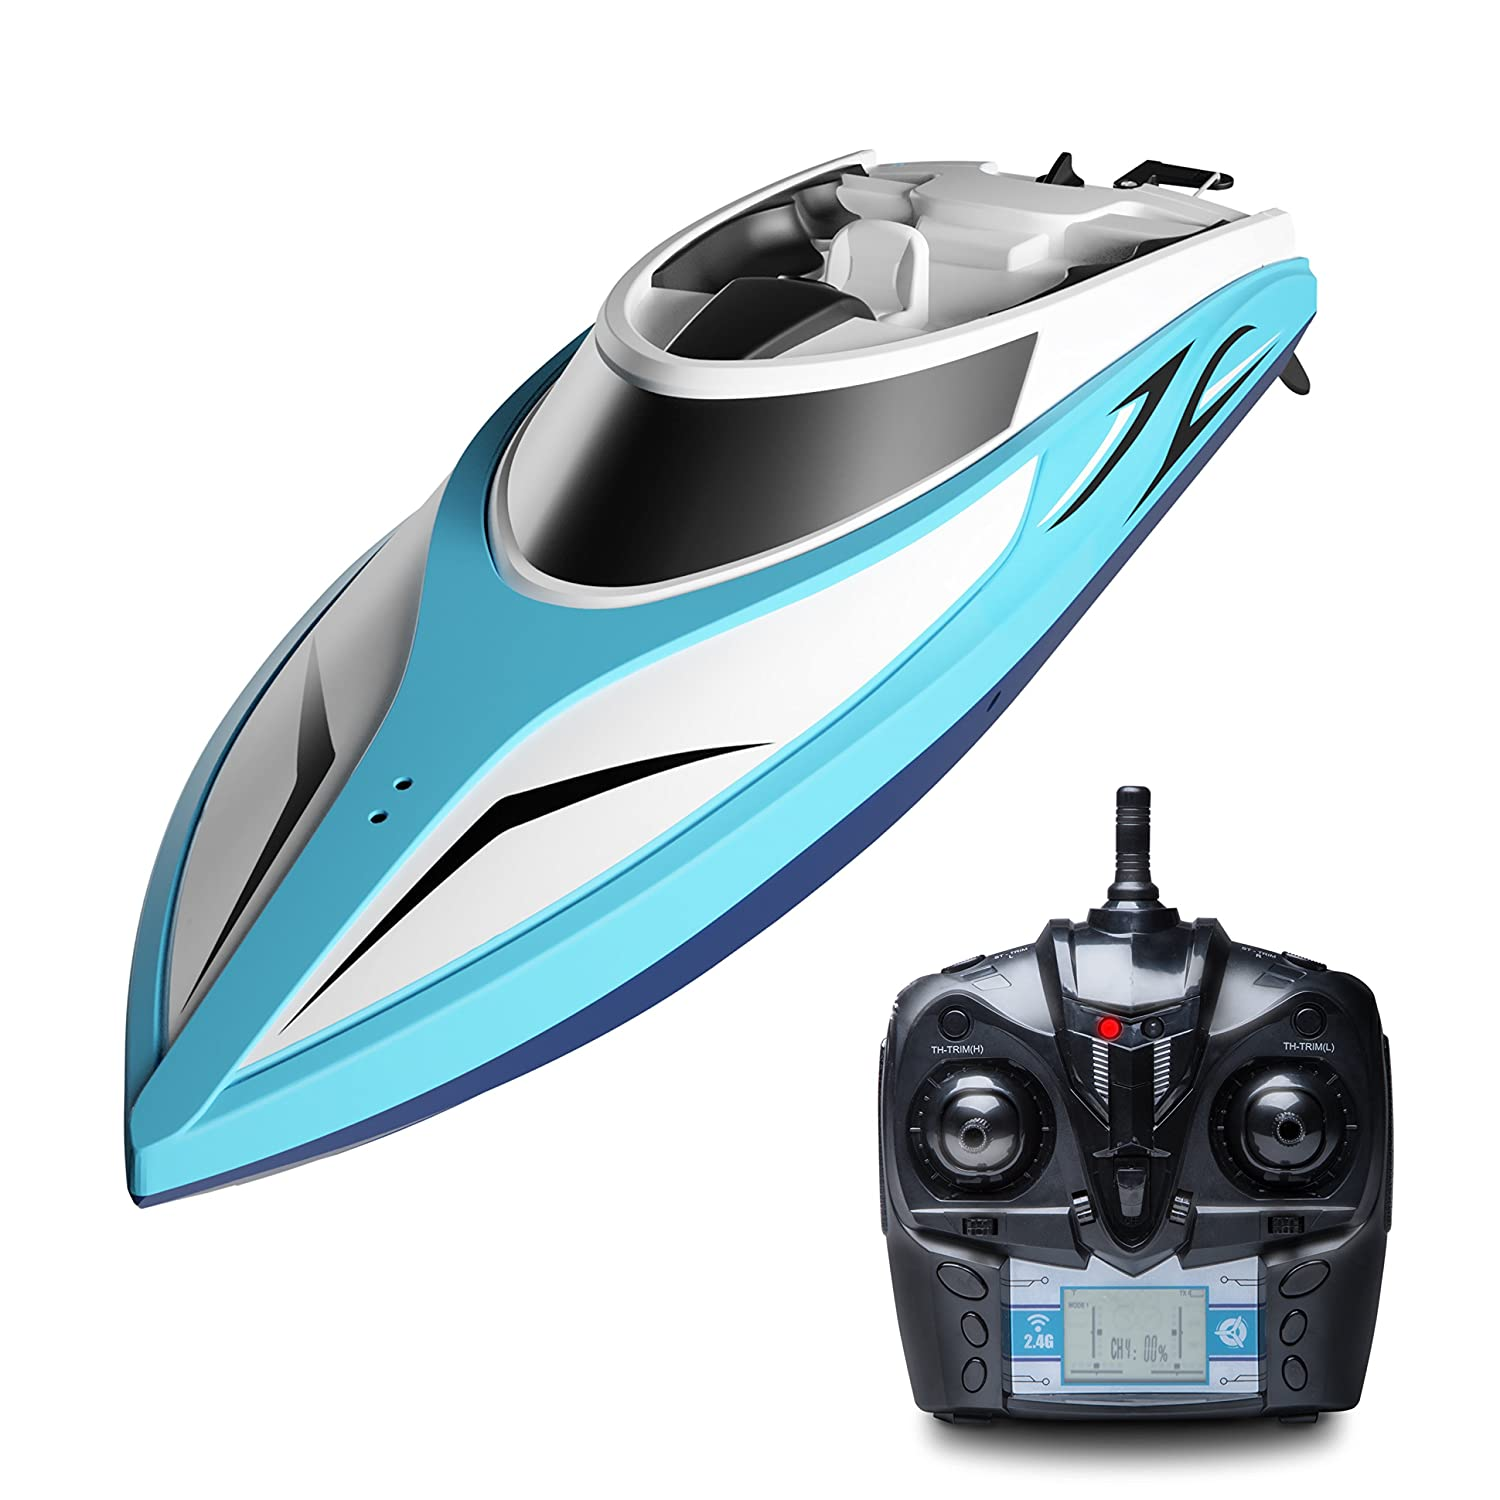 Amazon.com: Remote Control Boat for Pools and Lakes - H102 Velocity ...